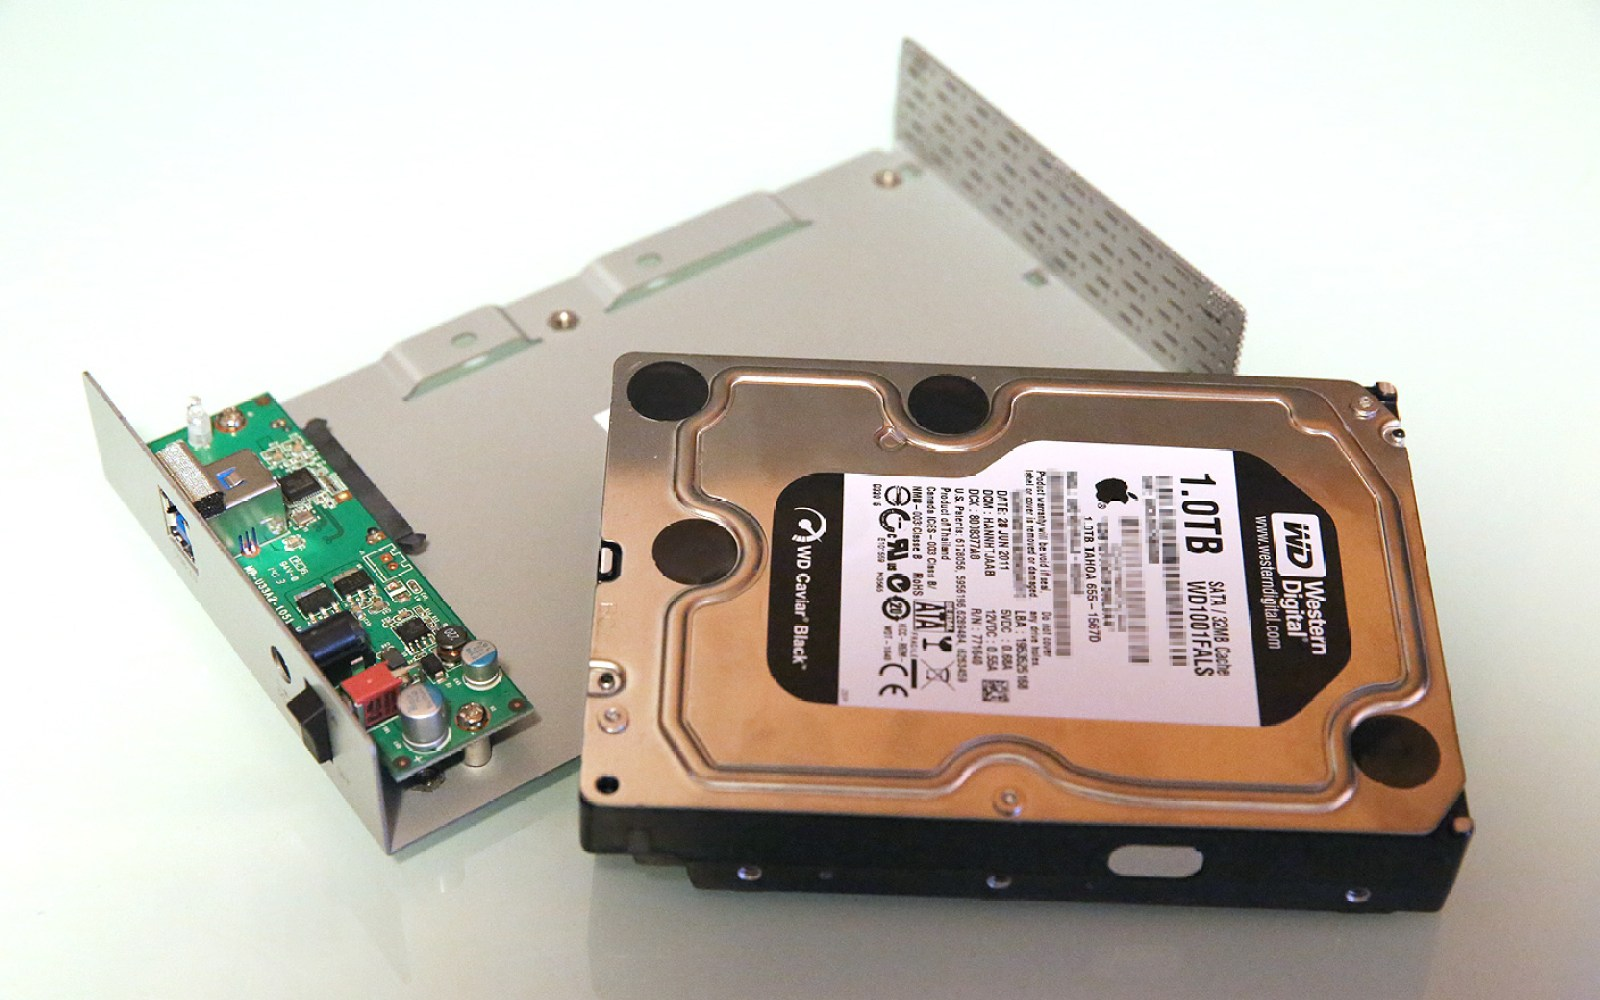 How-To: Reclaim your Mac's old hard drive or build a new one with an external USB enclosure